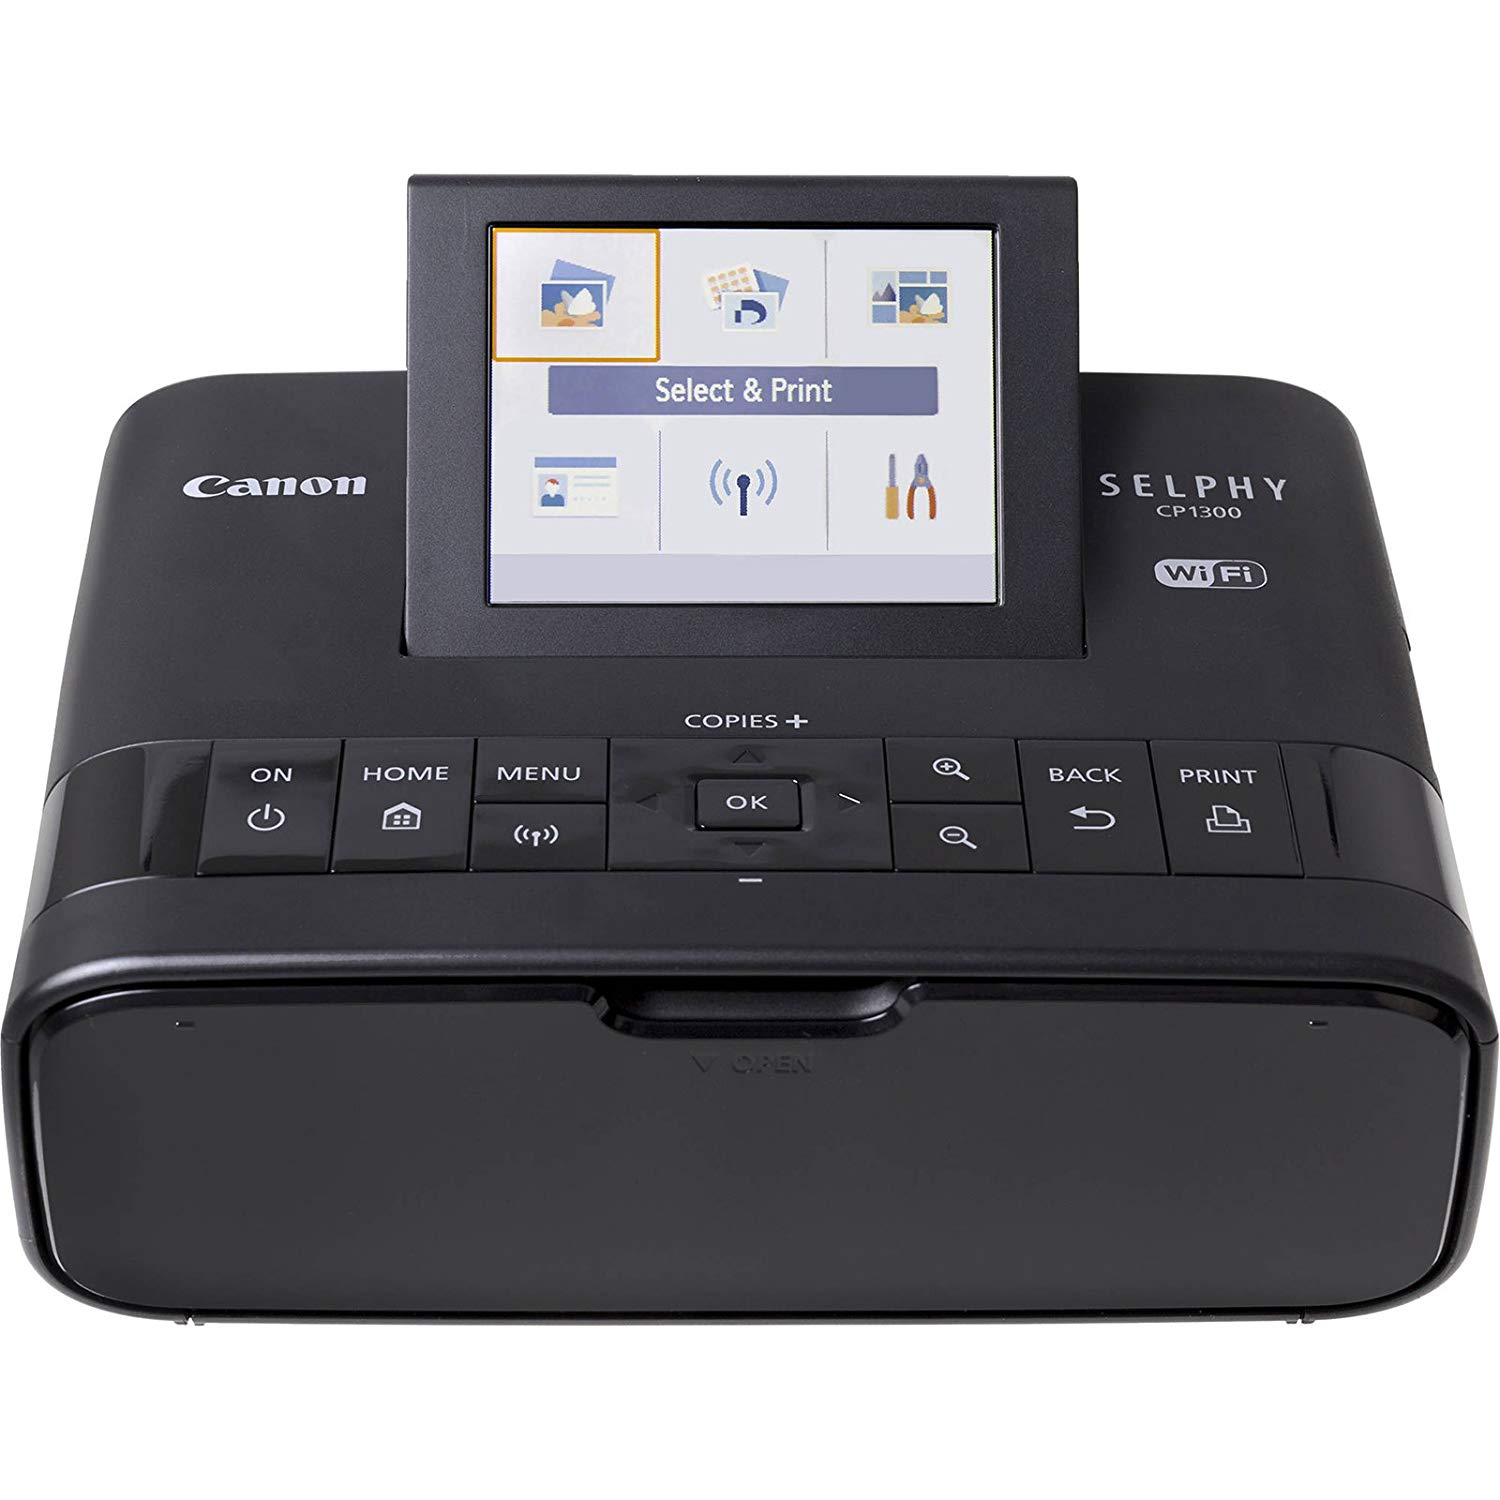 Canon Wireless Selphy Compact Photo Printer CP1300 Black